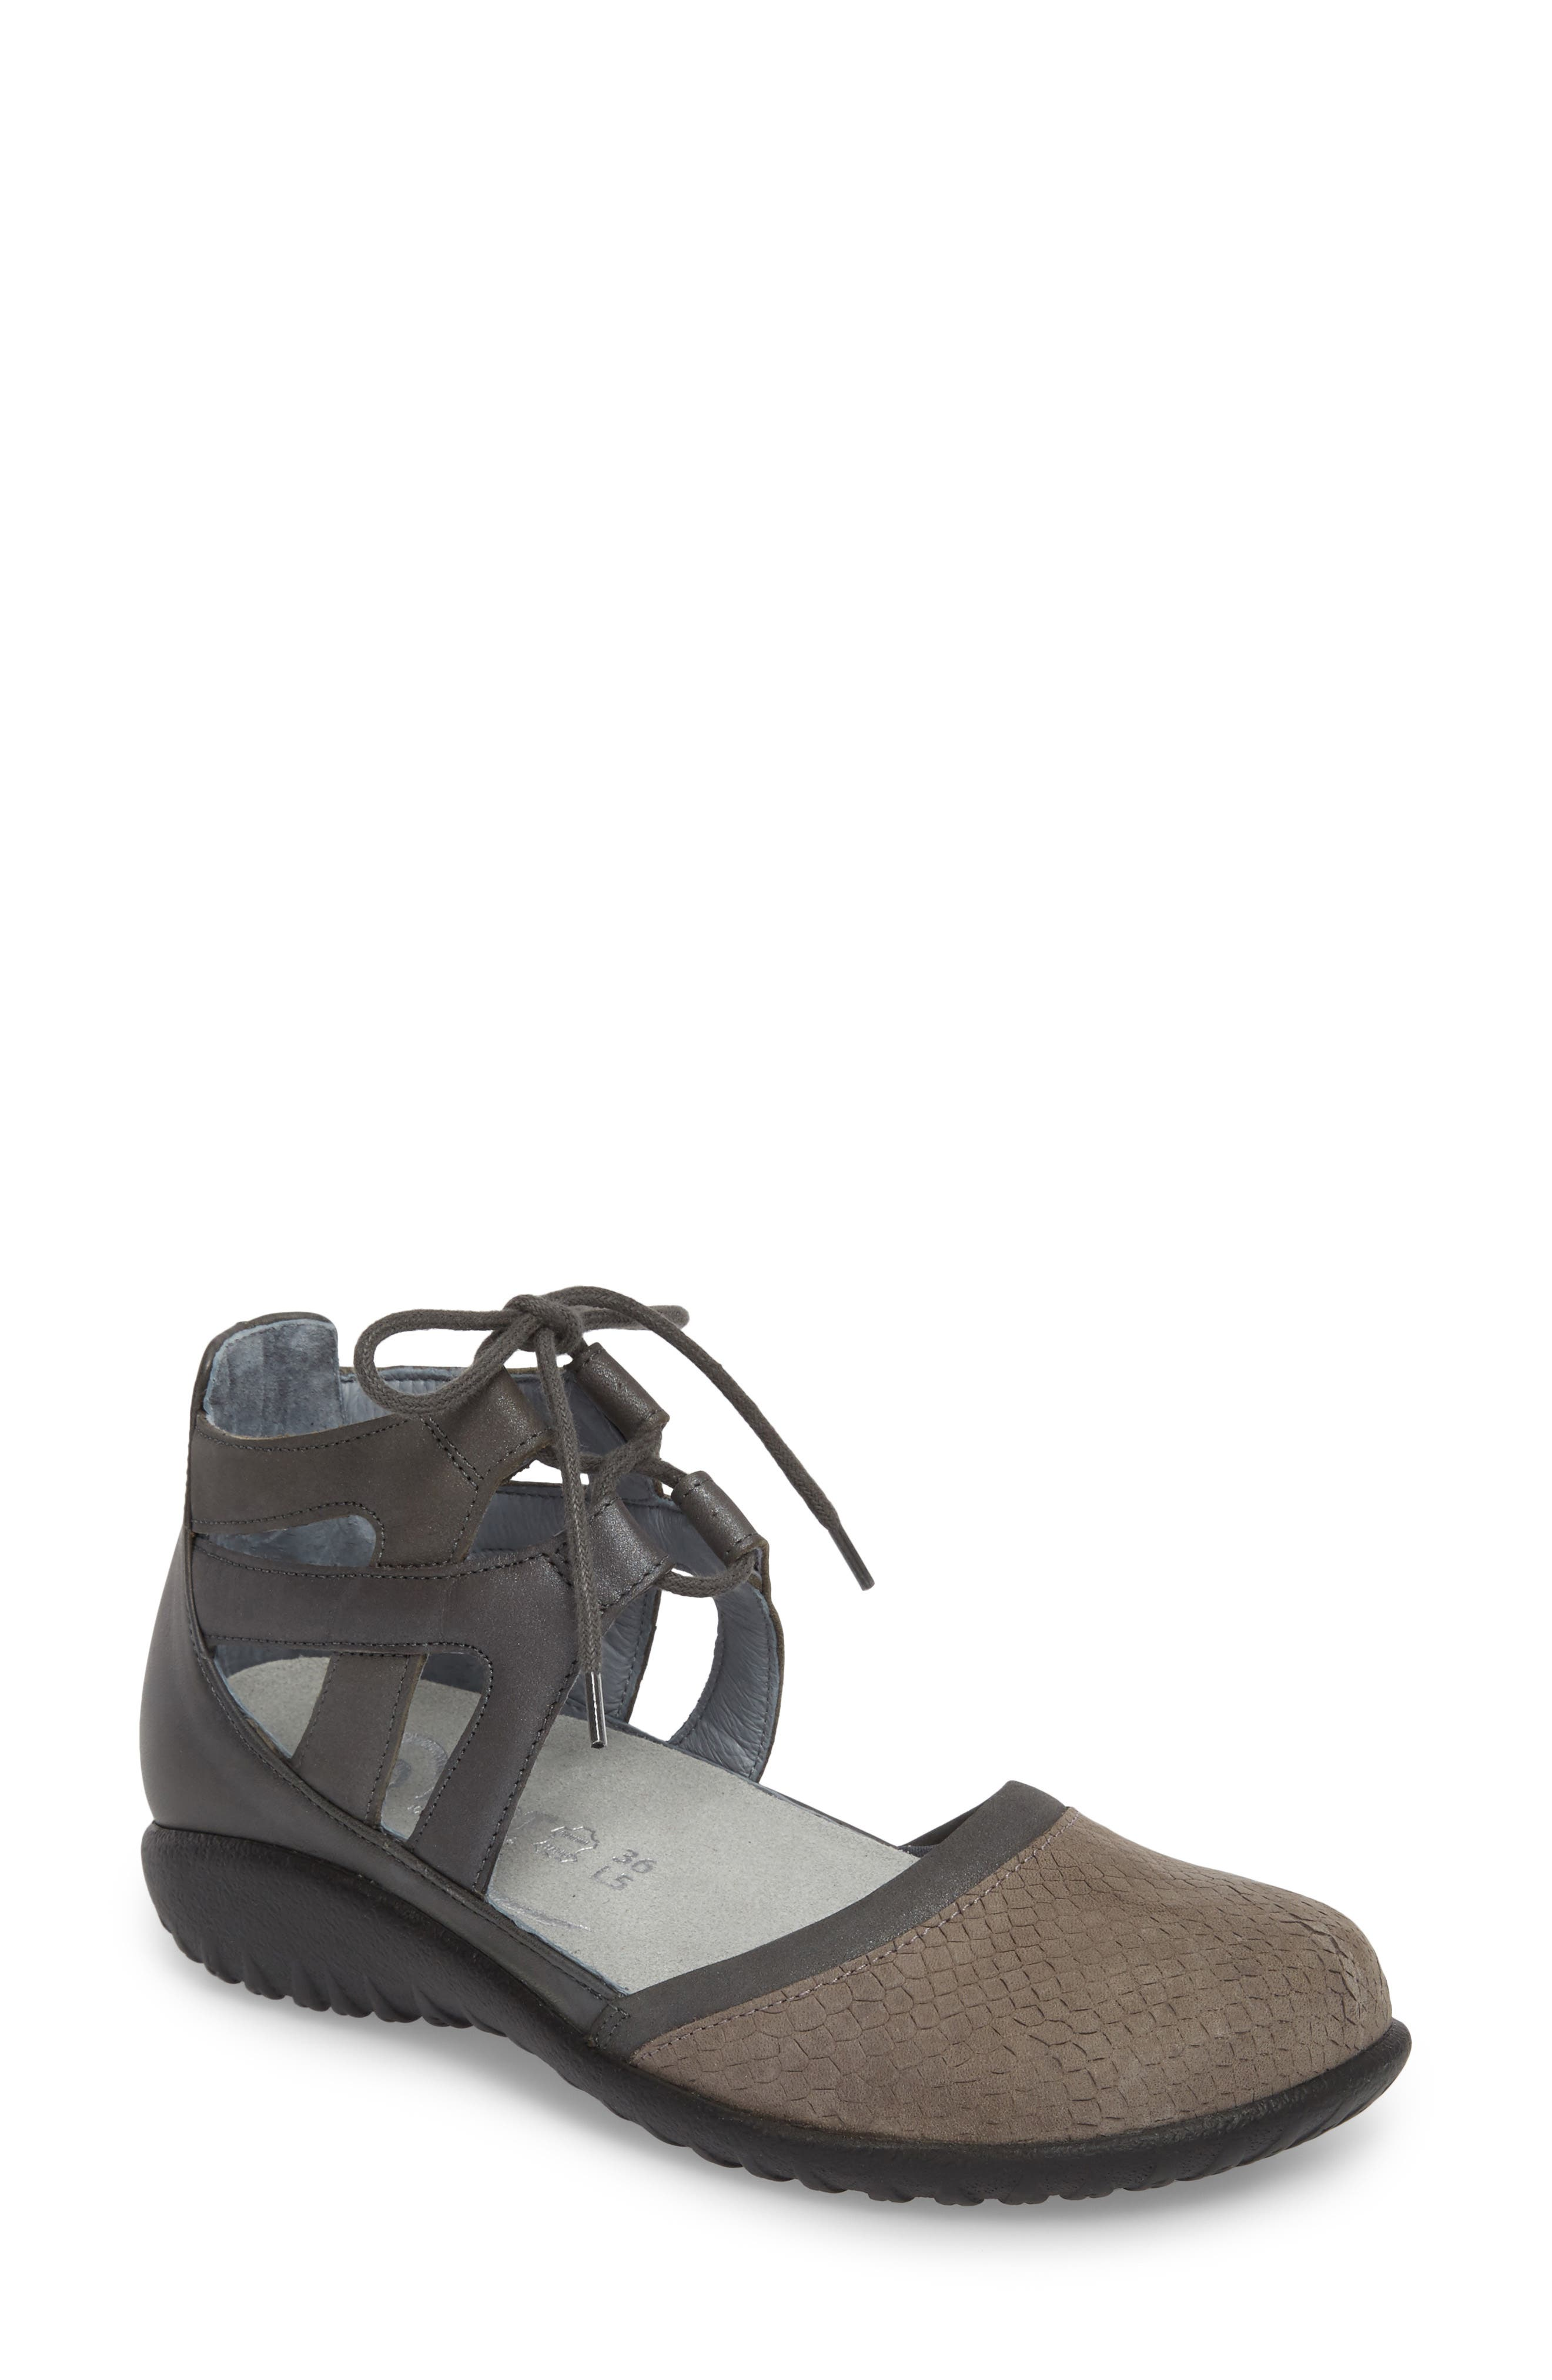 Alternate Image 1 Selected - Naot Kata Lace-Up Sandal (Women)